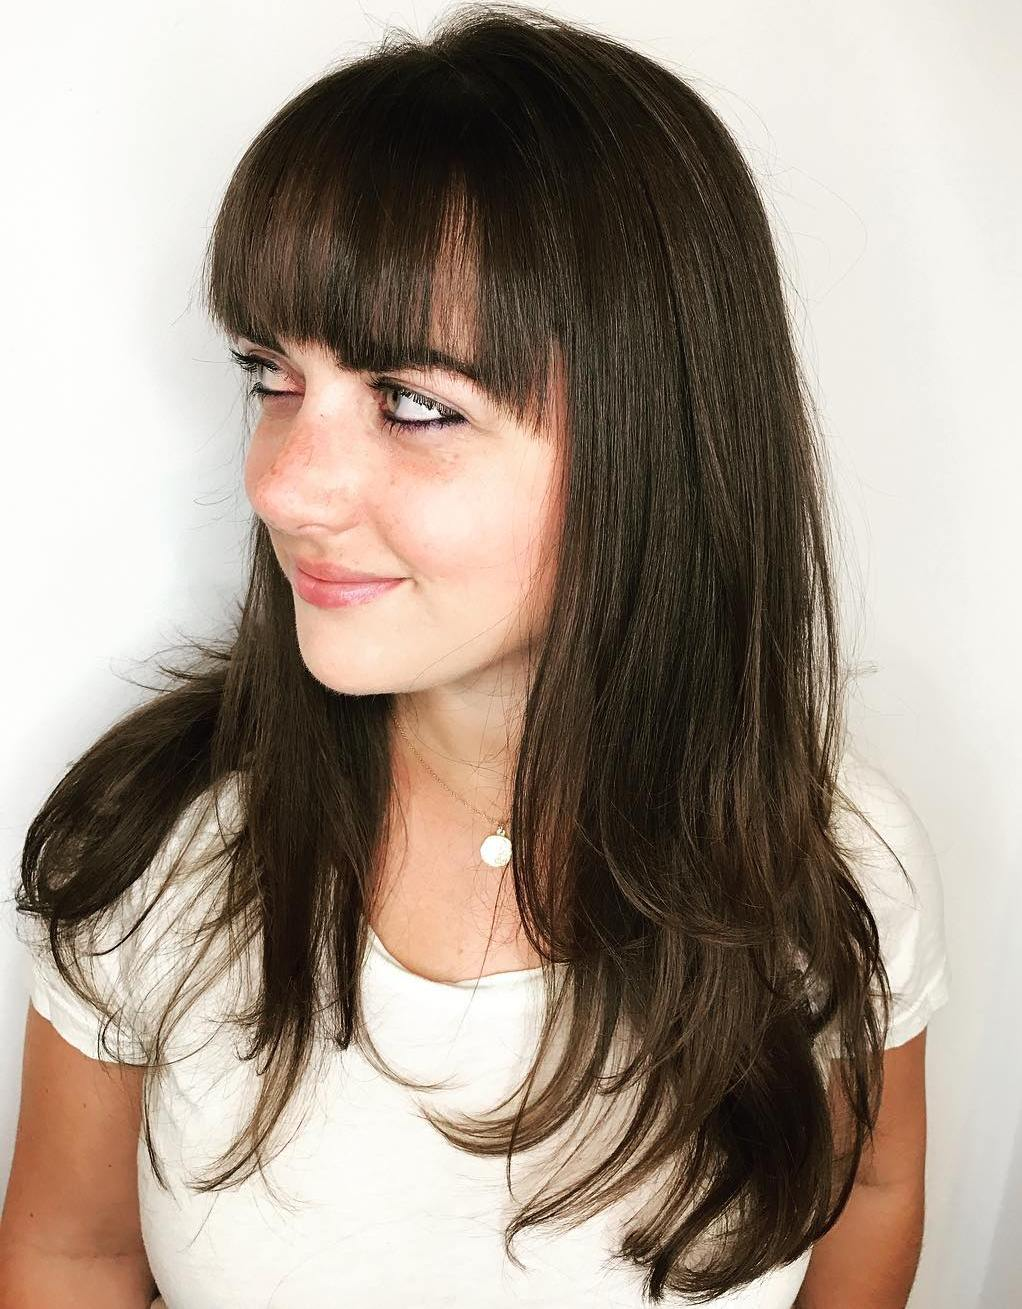 Long Hair with Jagged Bangs and Layered Ends